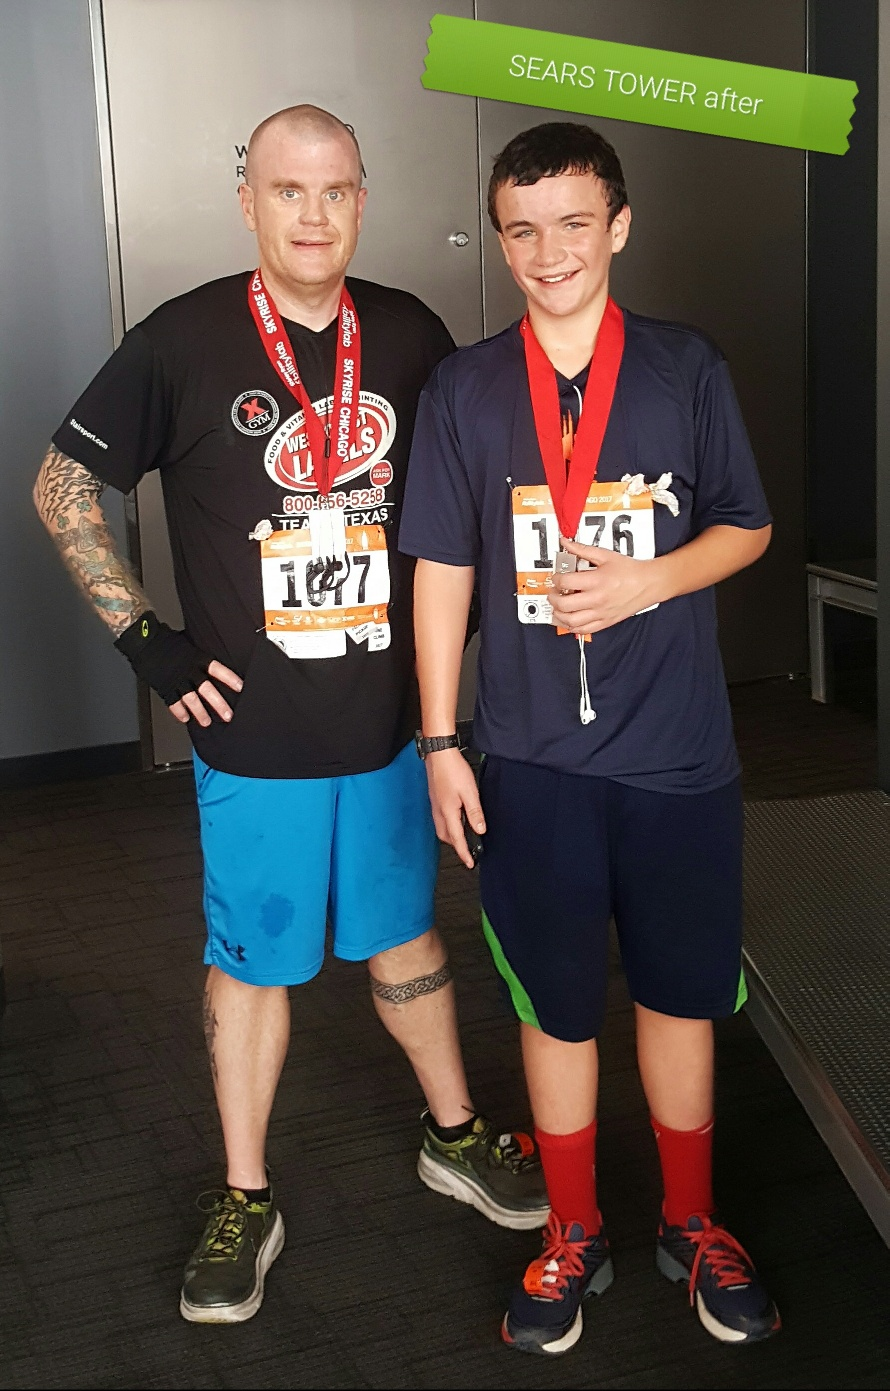 image of steve and lil man at Sears Tower 2017 after